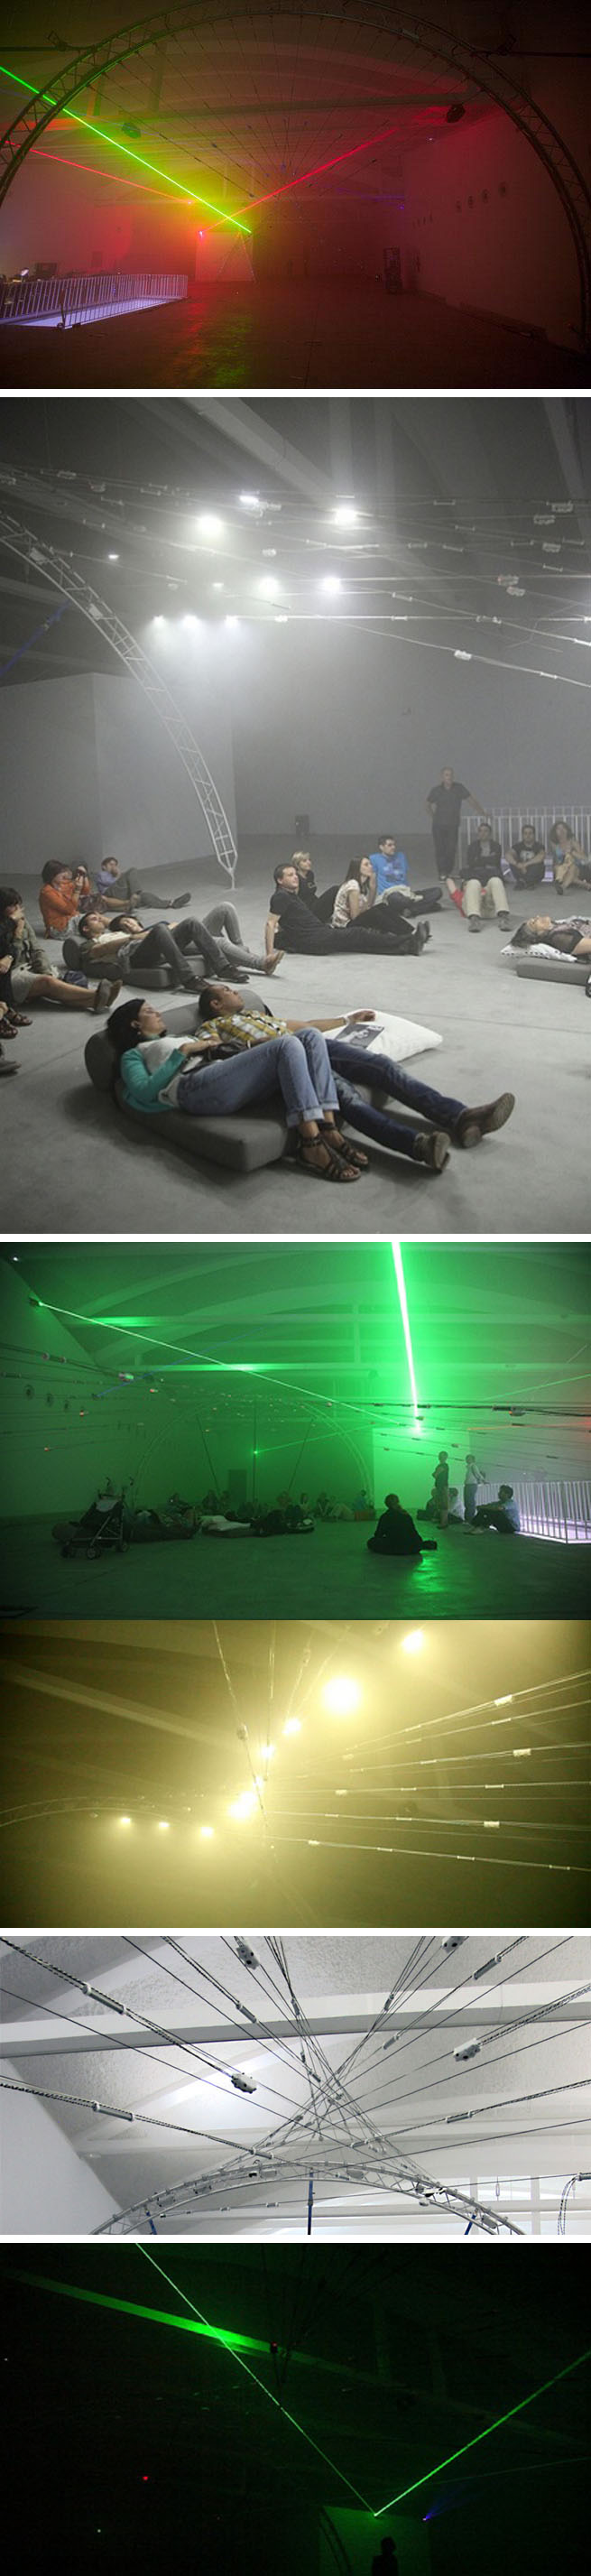 Light and sound installation by Chris Slater at LABoral in Gijon, Spain